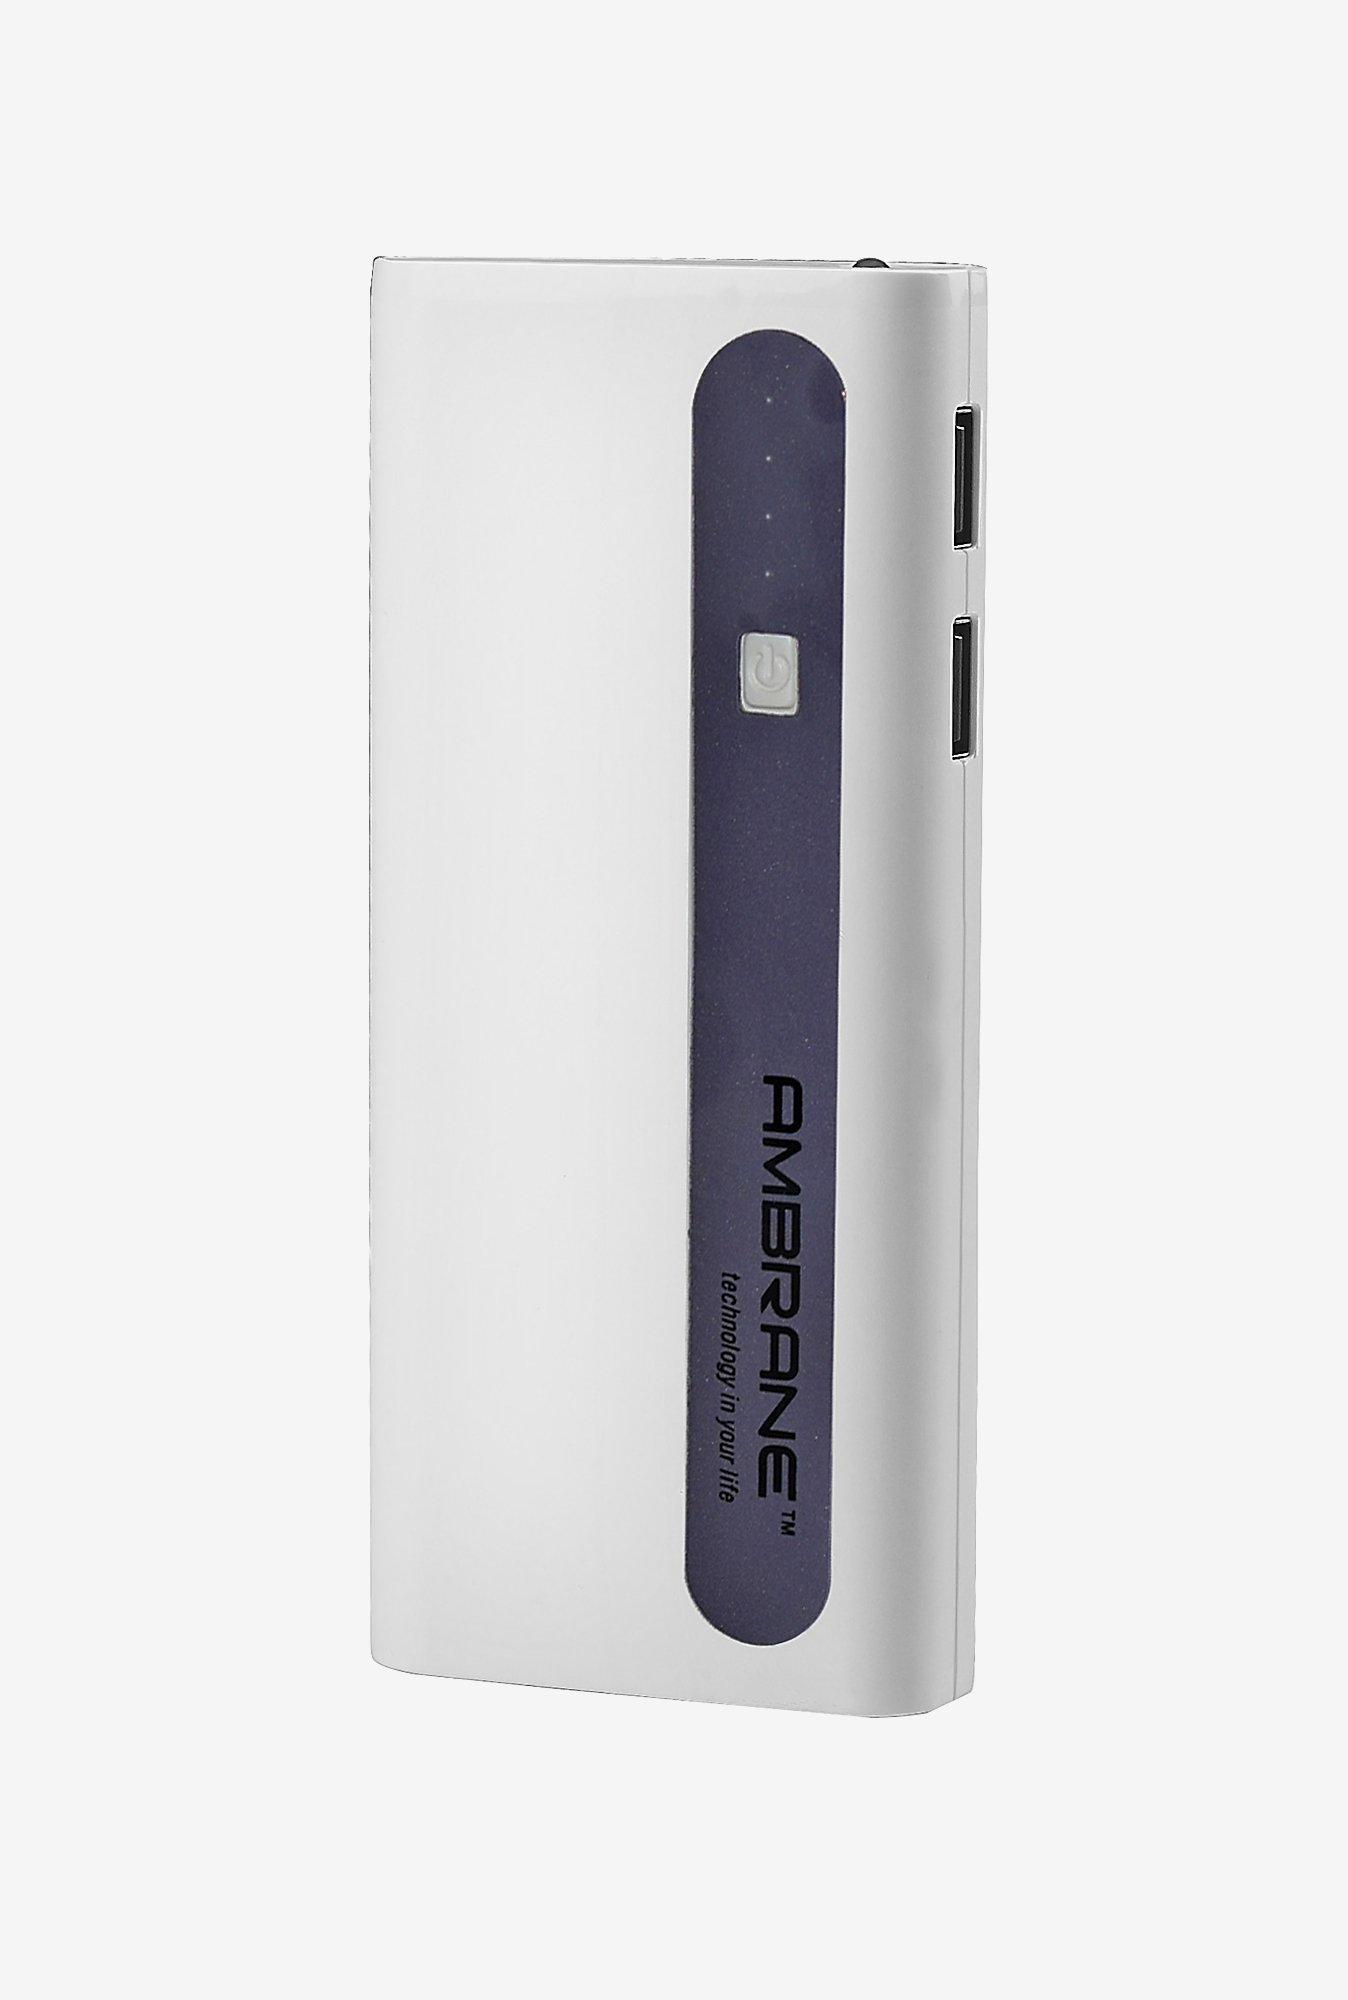 Ambrane P-1310 13000 mAh Power Bank (White & Purple)